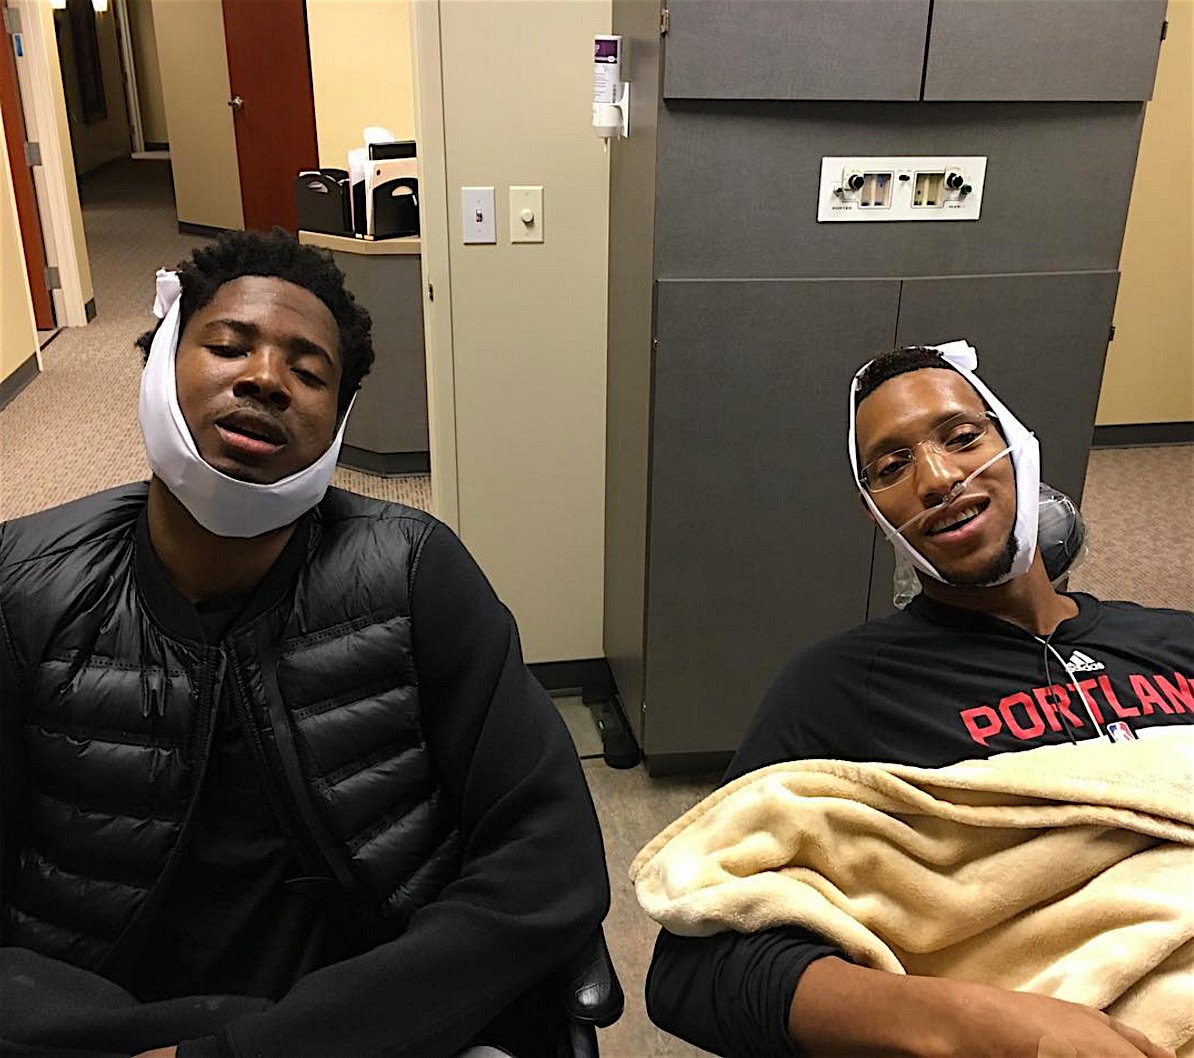 Evan Turner and Ed Davis visit the dentist, then pose for amazing photo https://t.co/Hy44yGscpb https://t.co/2Pgpnw24jb